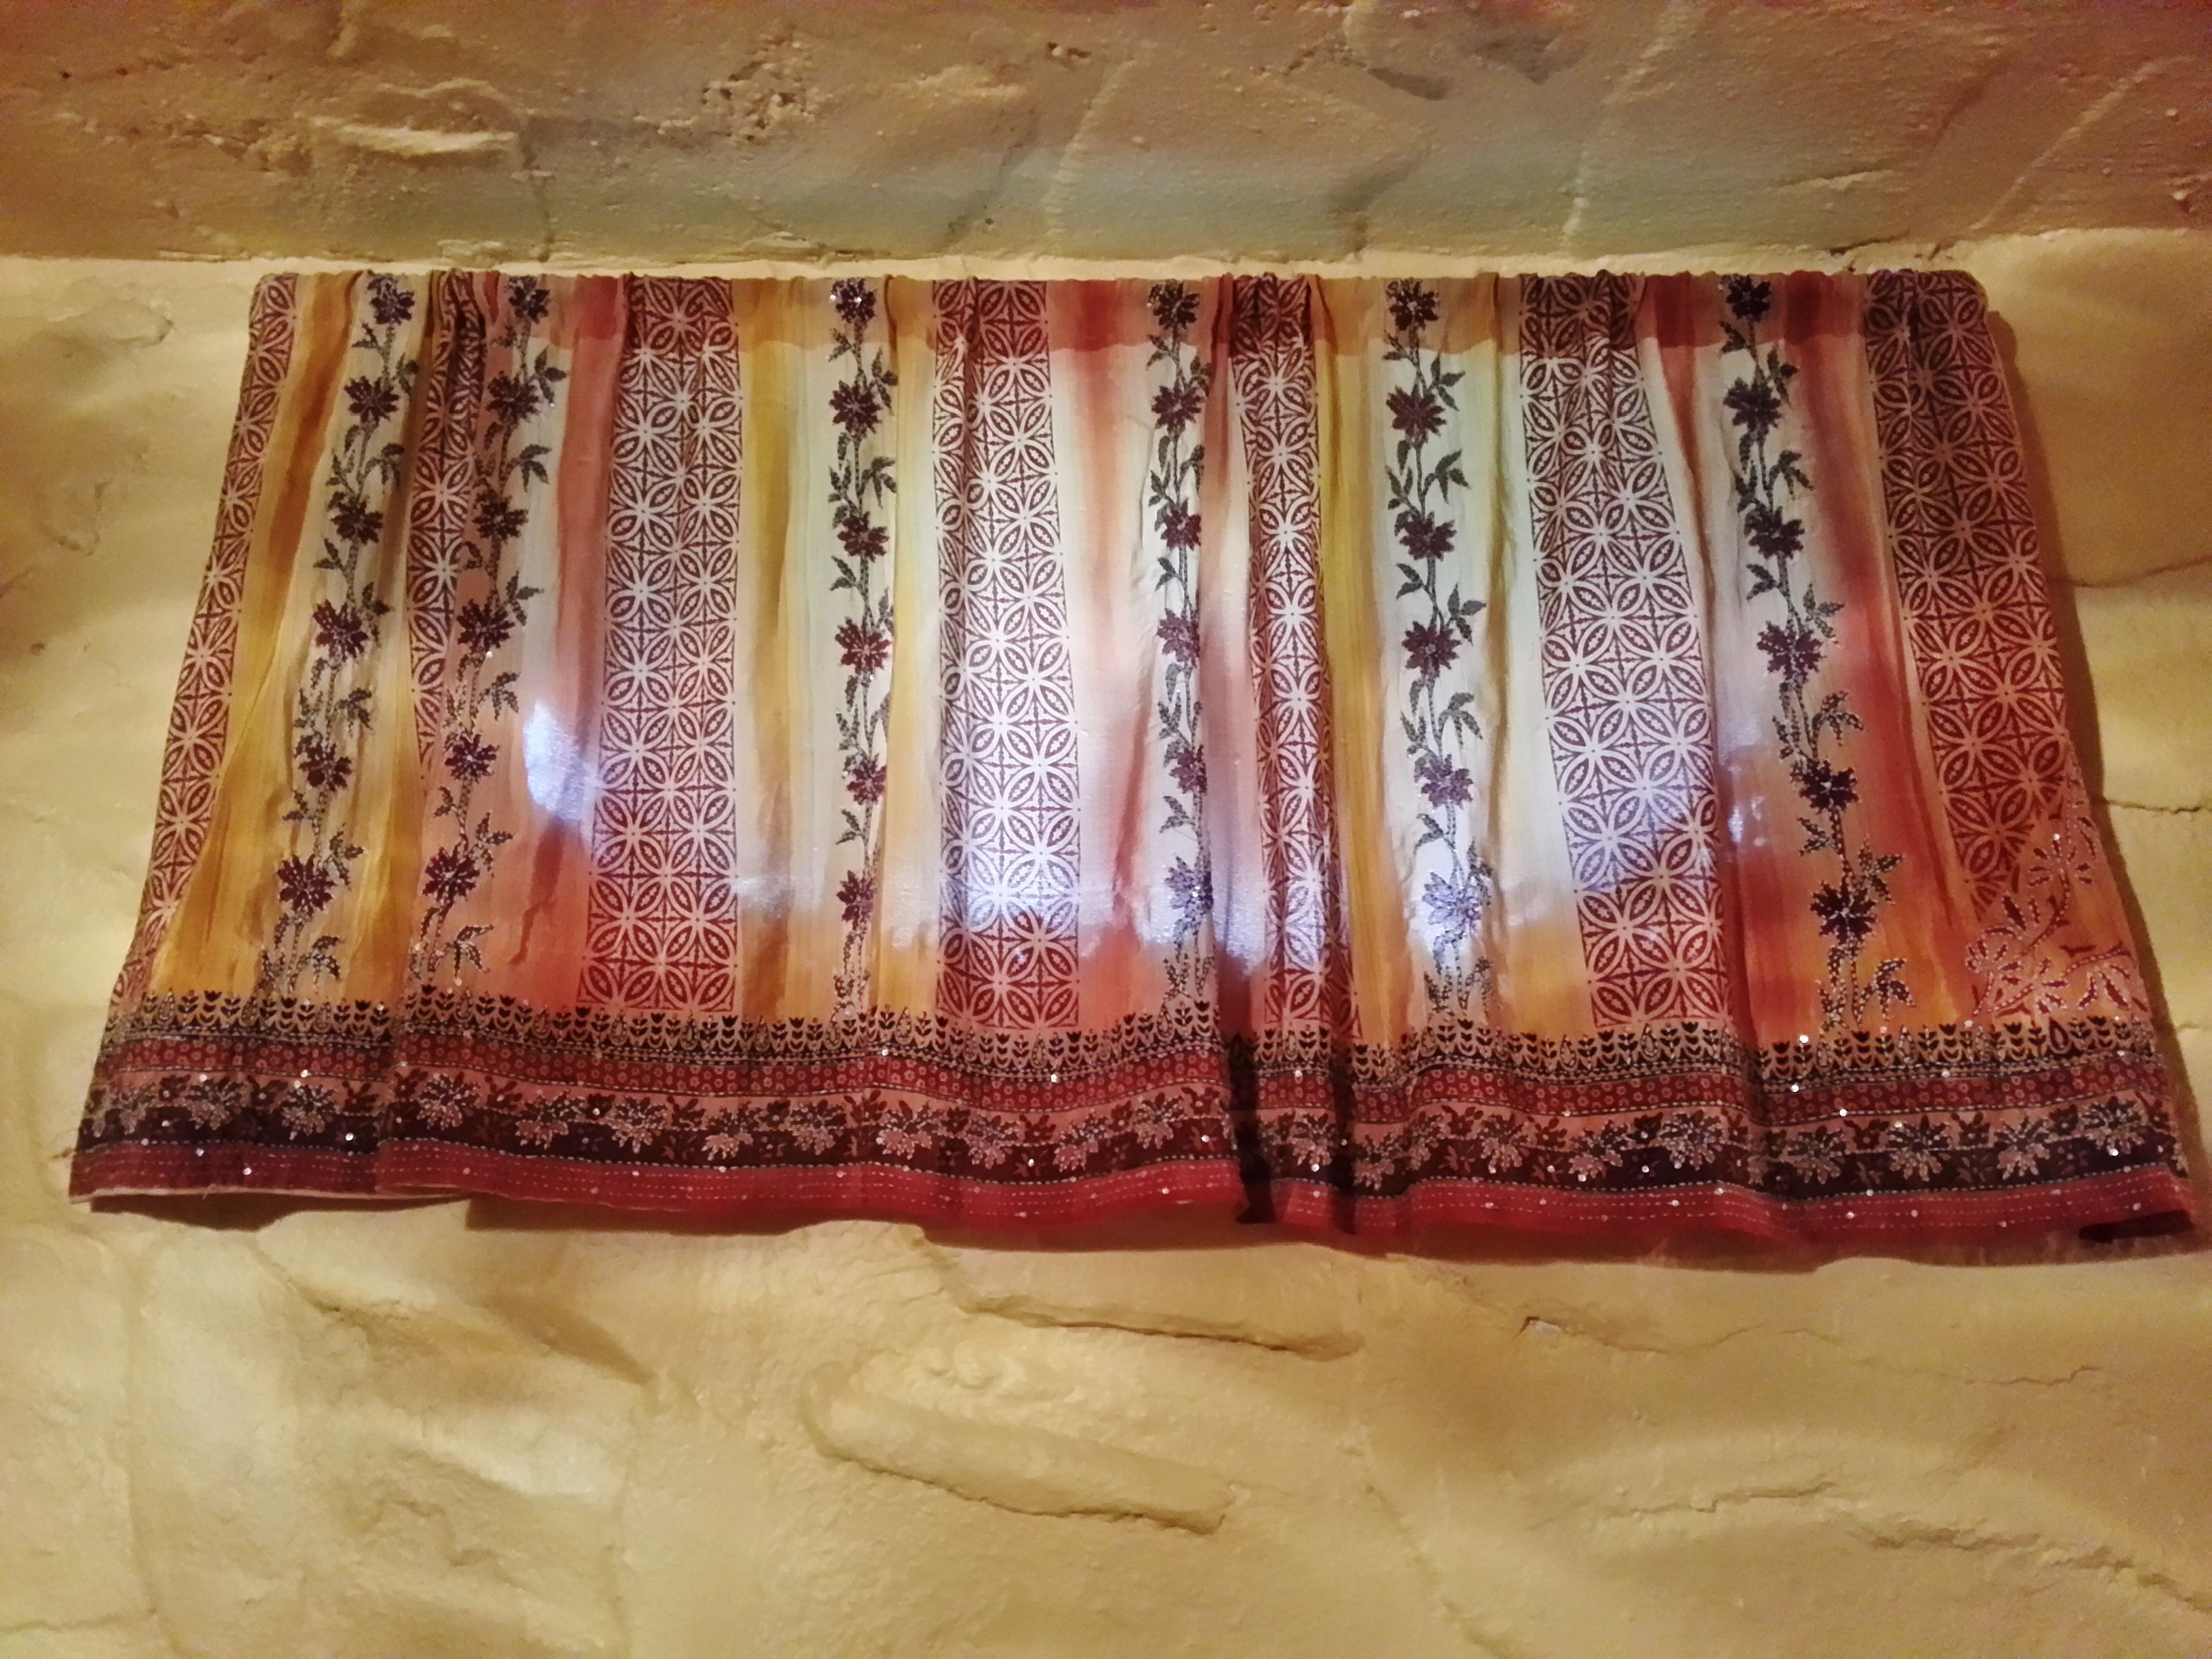 Basement curtains from a $19 Indian sari